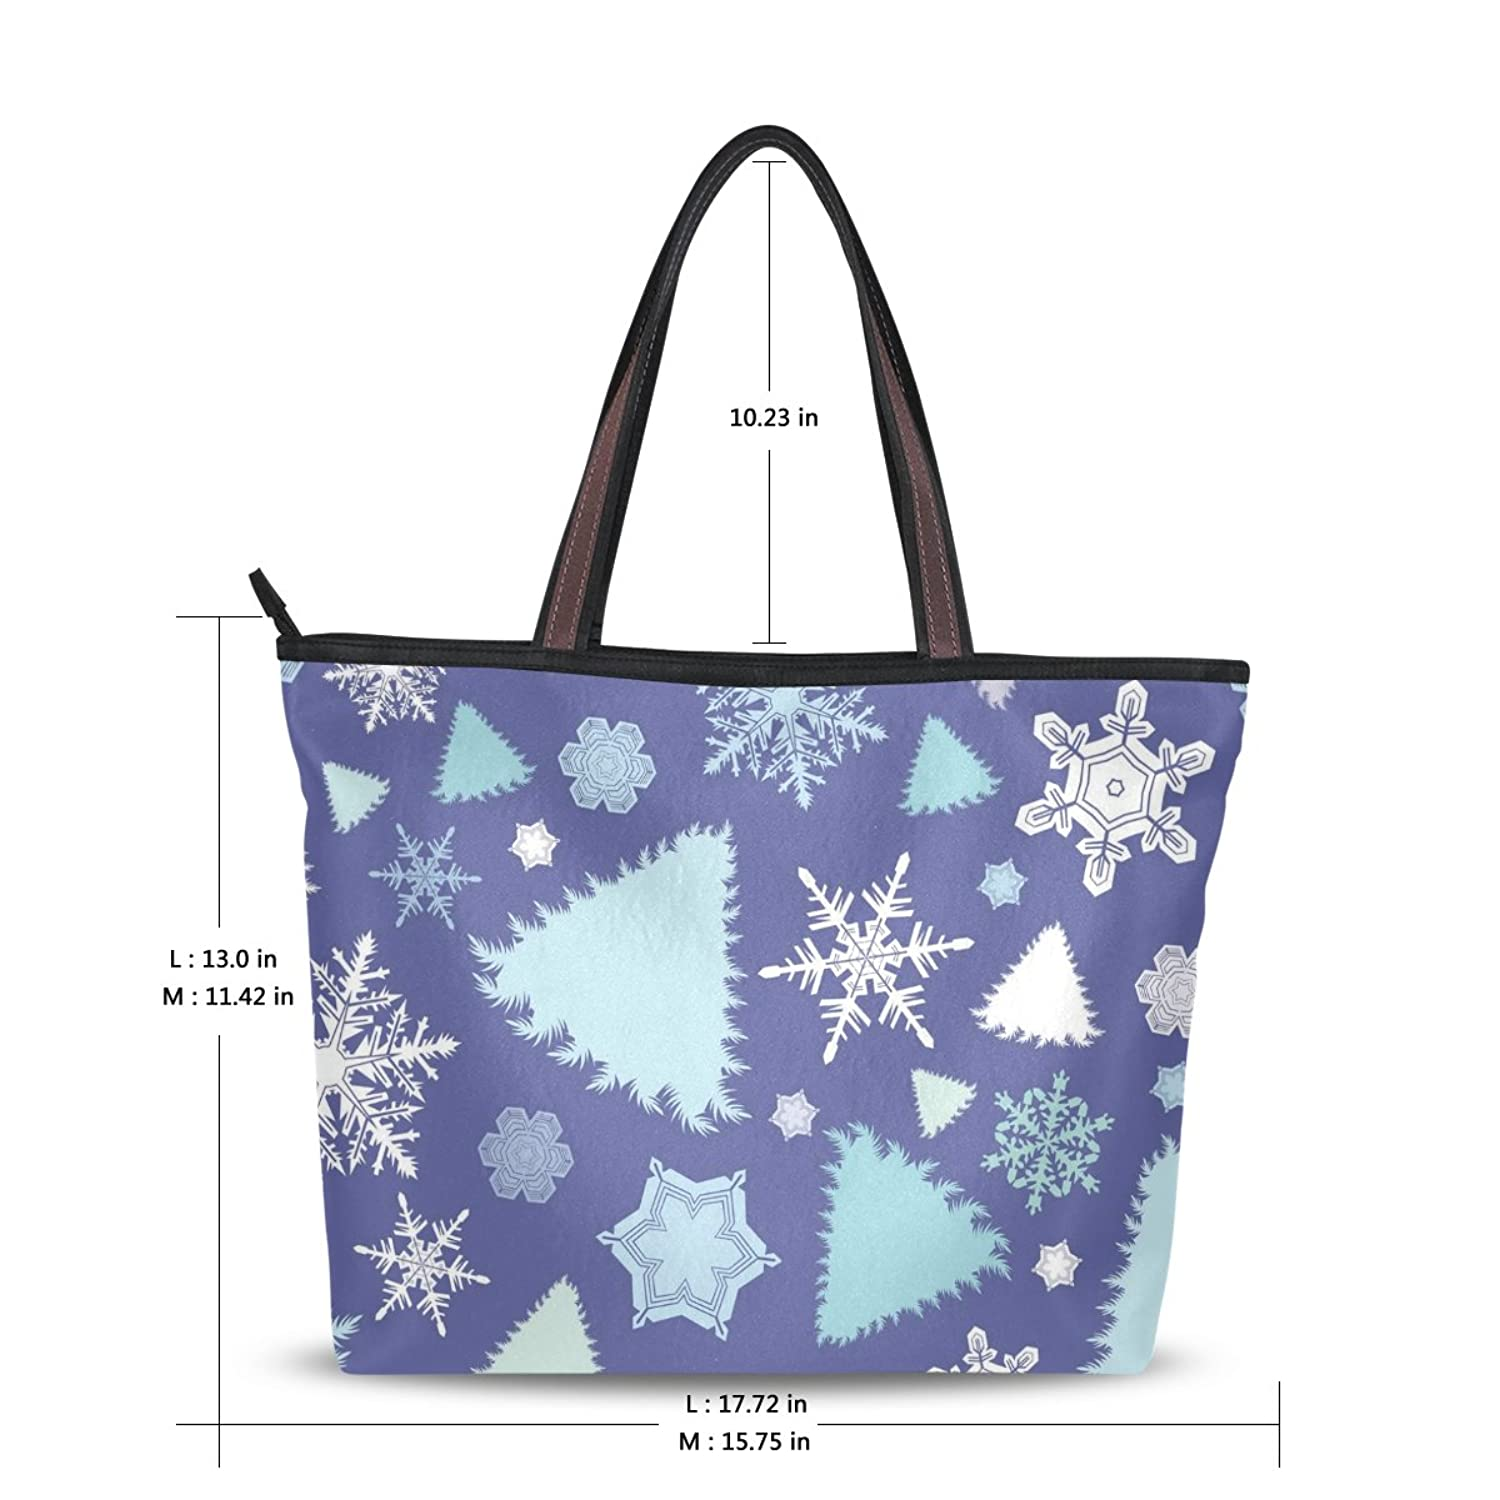 Senya Fashion Women's Handbag Microfiber Large Tote Shoulder Bag, Christmas Snowflake Pattern